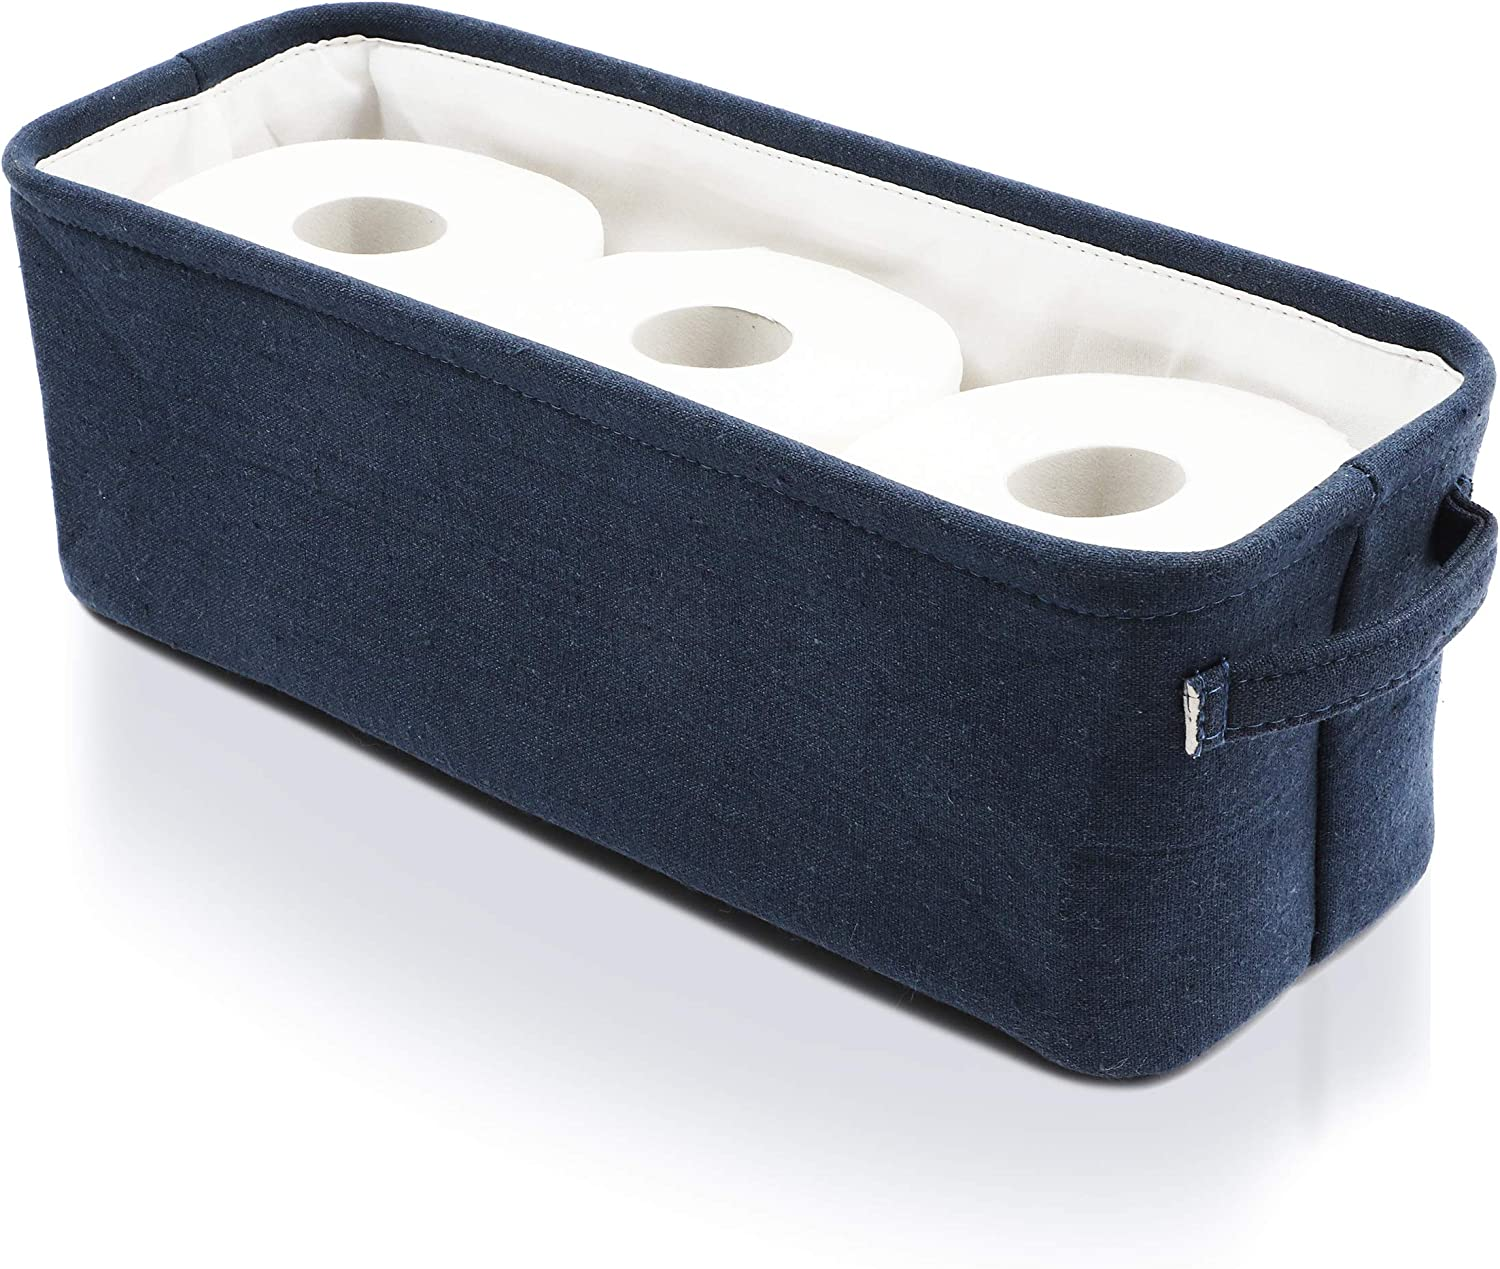 Juvale Dark Blue Fabric Storage Bin for Home and Bathroom (16 x 6 x 5.5 Inches): Home & Kitchen